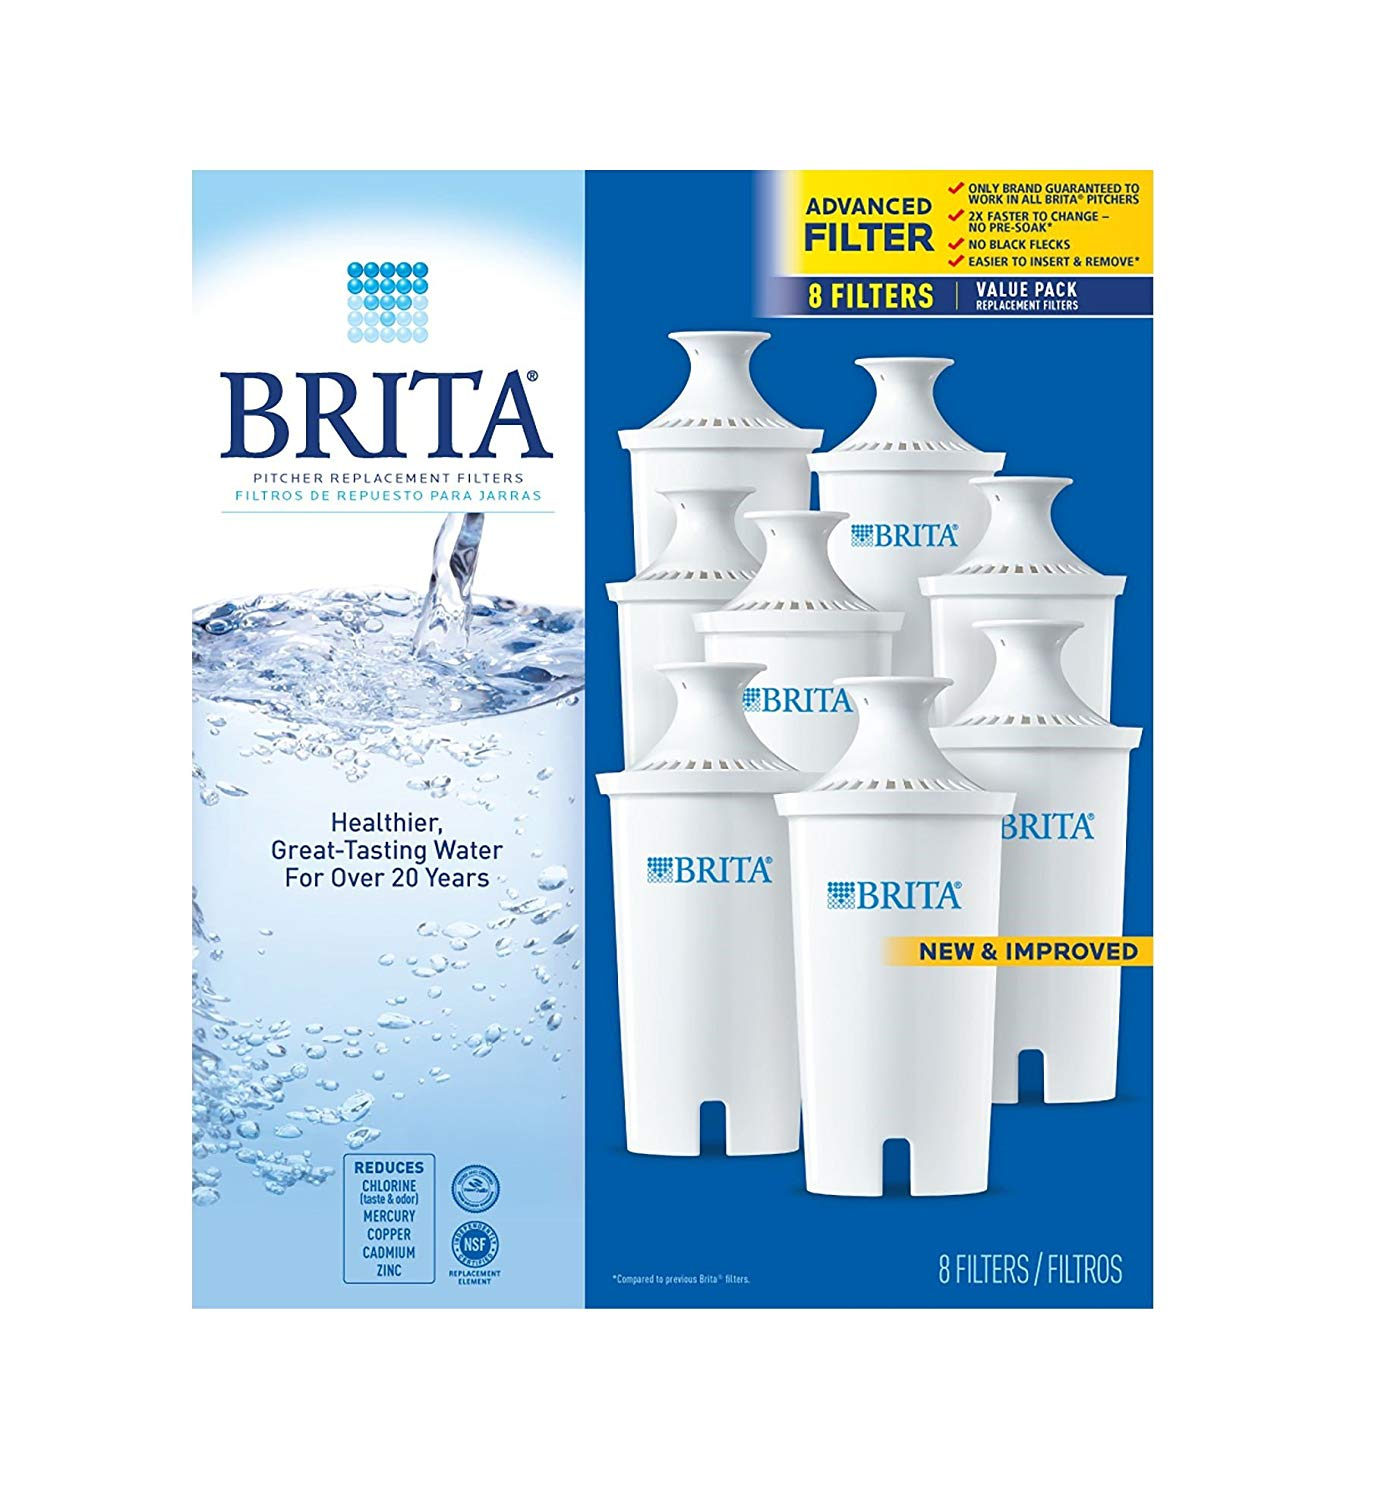 Pitcher Replacement Filters,white,8 pack, Brita Pitcher Replacement Filters - 8 ct. By Brita